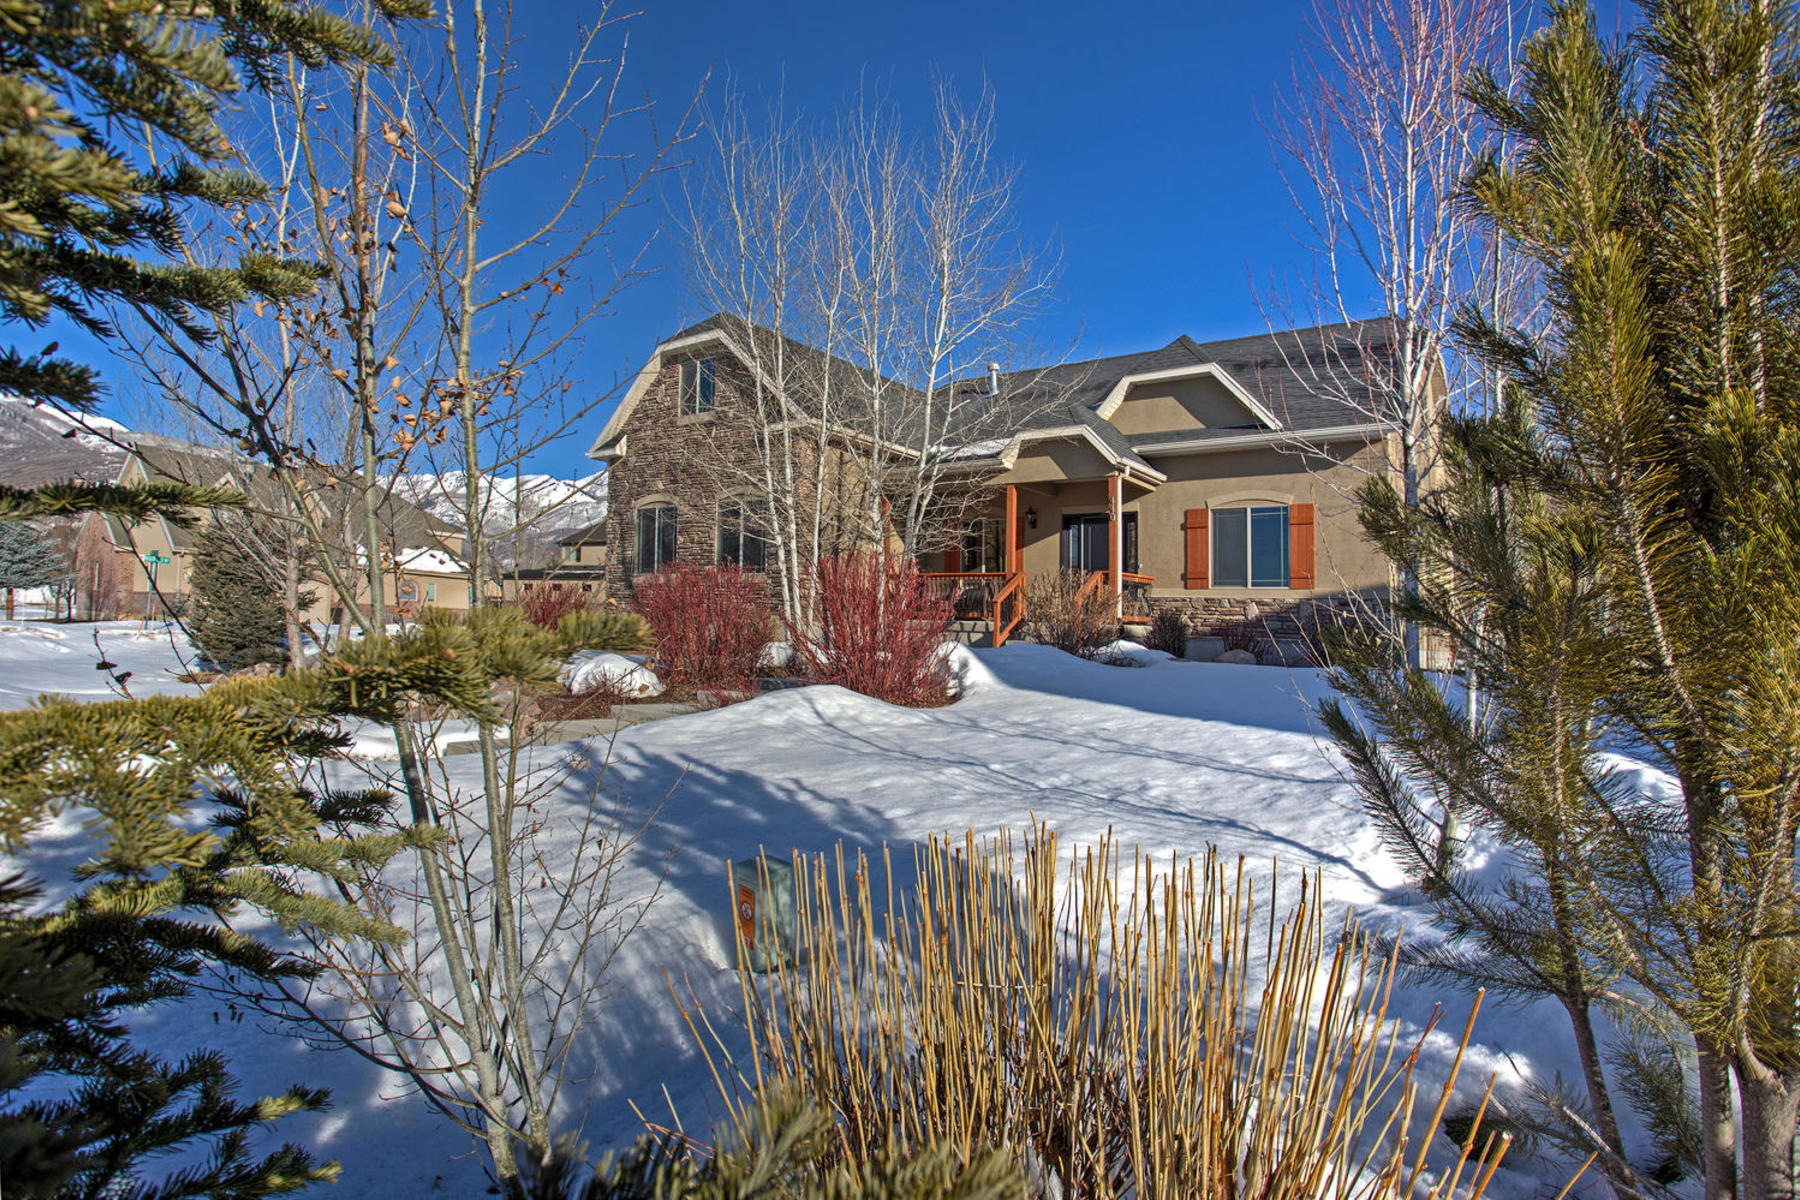 Villa per Vendita alle ore Adorable Midway Home with Amazing Views 440 S Meadow Creek Ln Midway, Utah, 84049 Stati Uniti